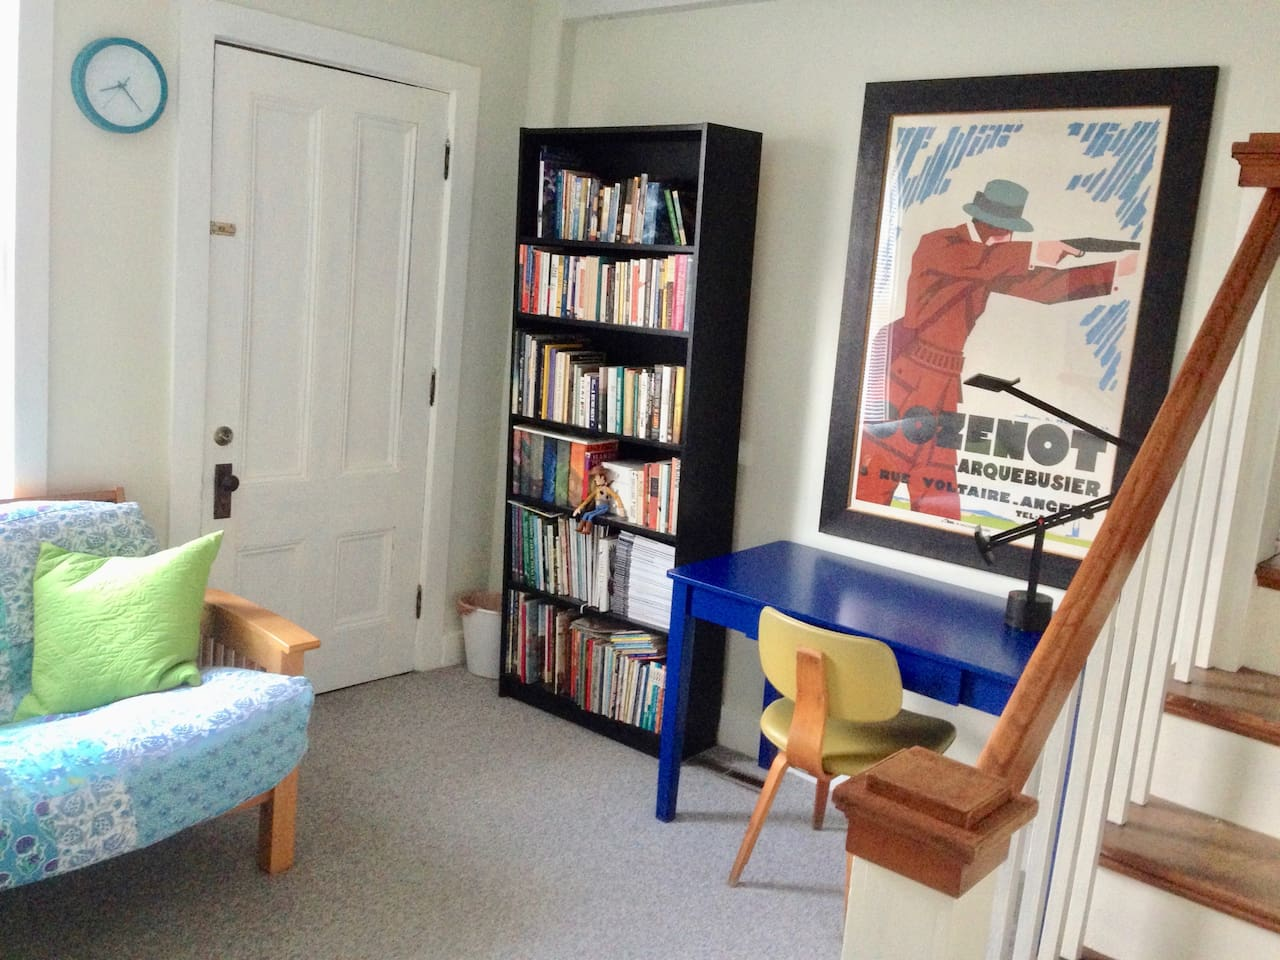 Apartment enters onto a comfy, art-filled workspace and supply of useful novels. Also the futon.